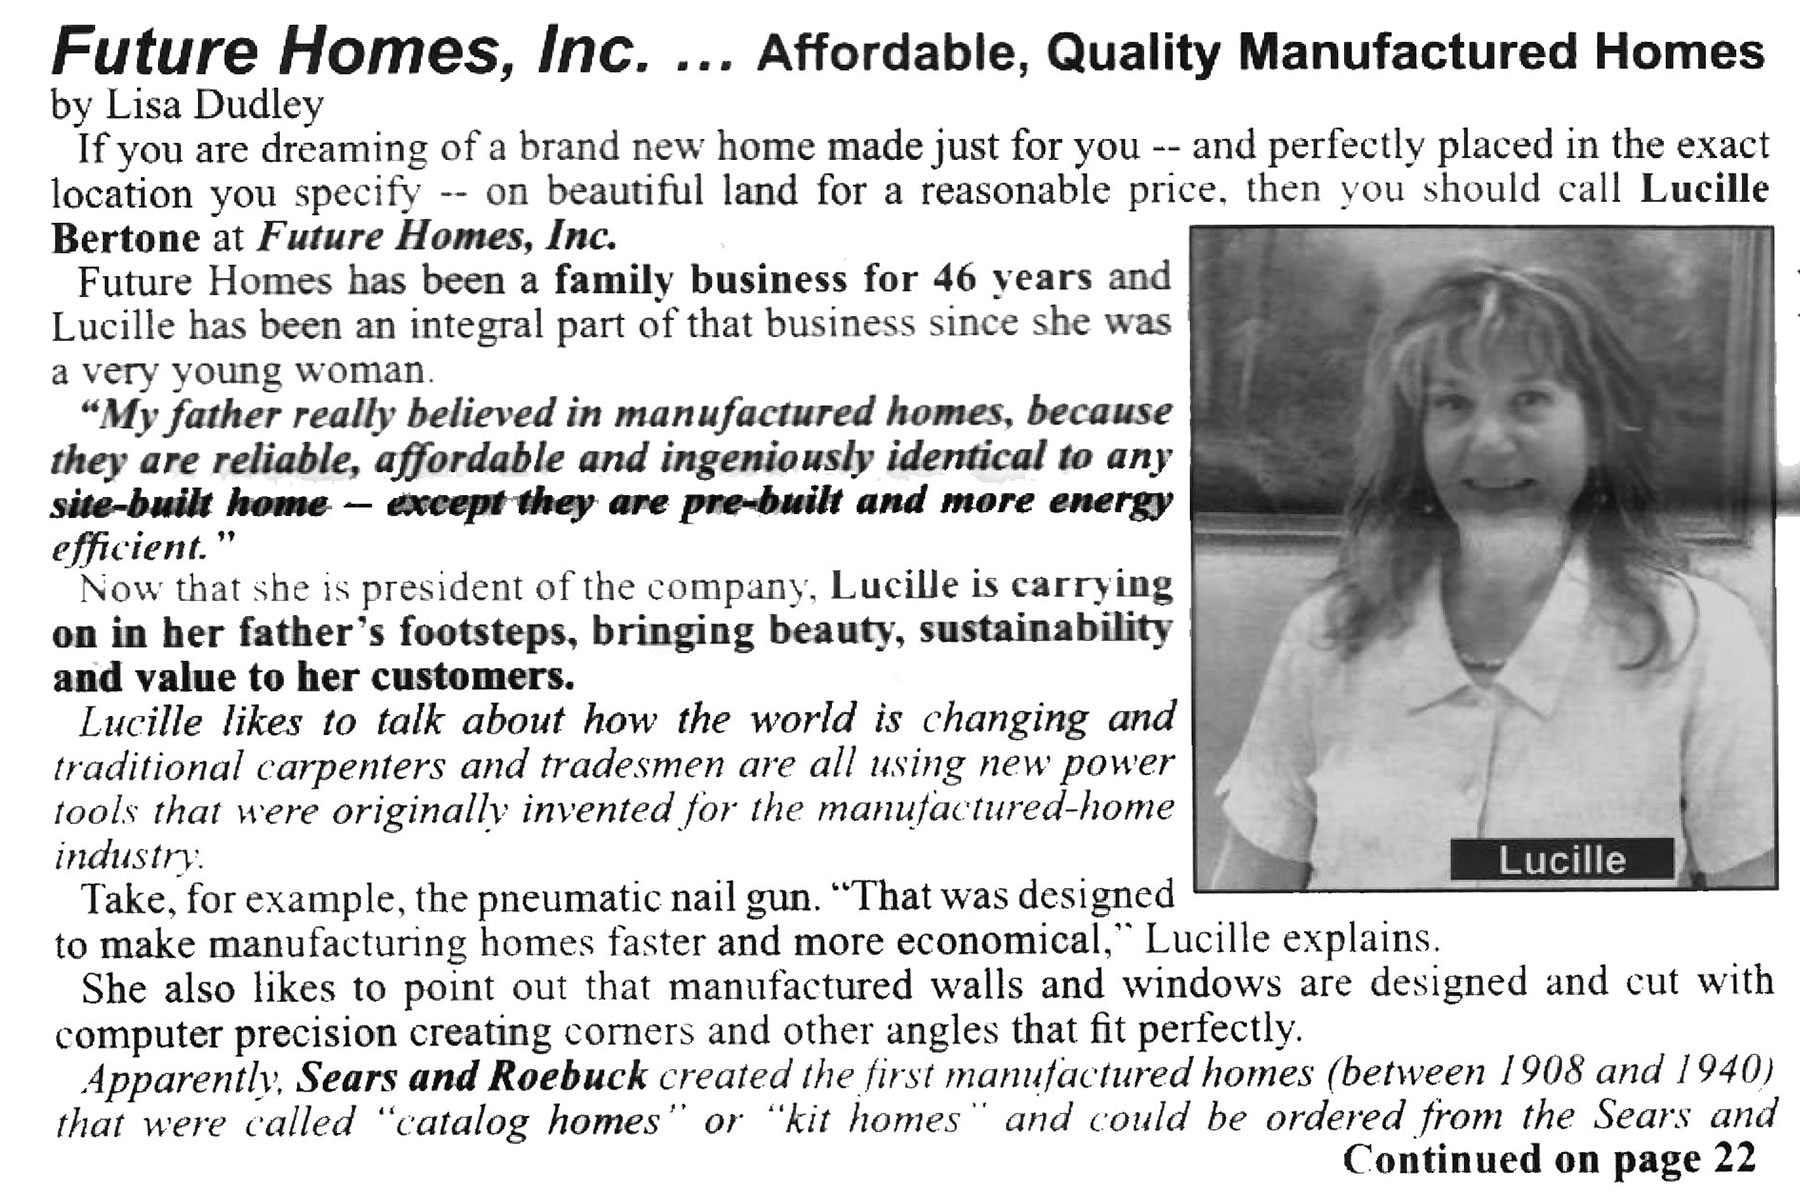 newspaper article: Future Homes...Affordable, Quality Manufactured Homes